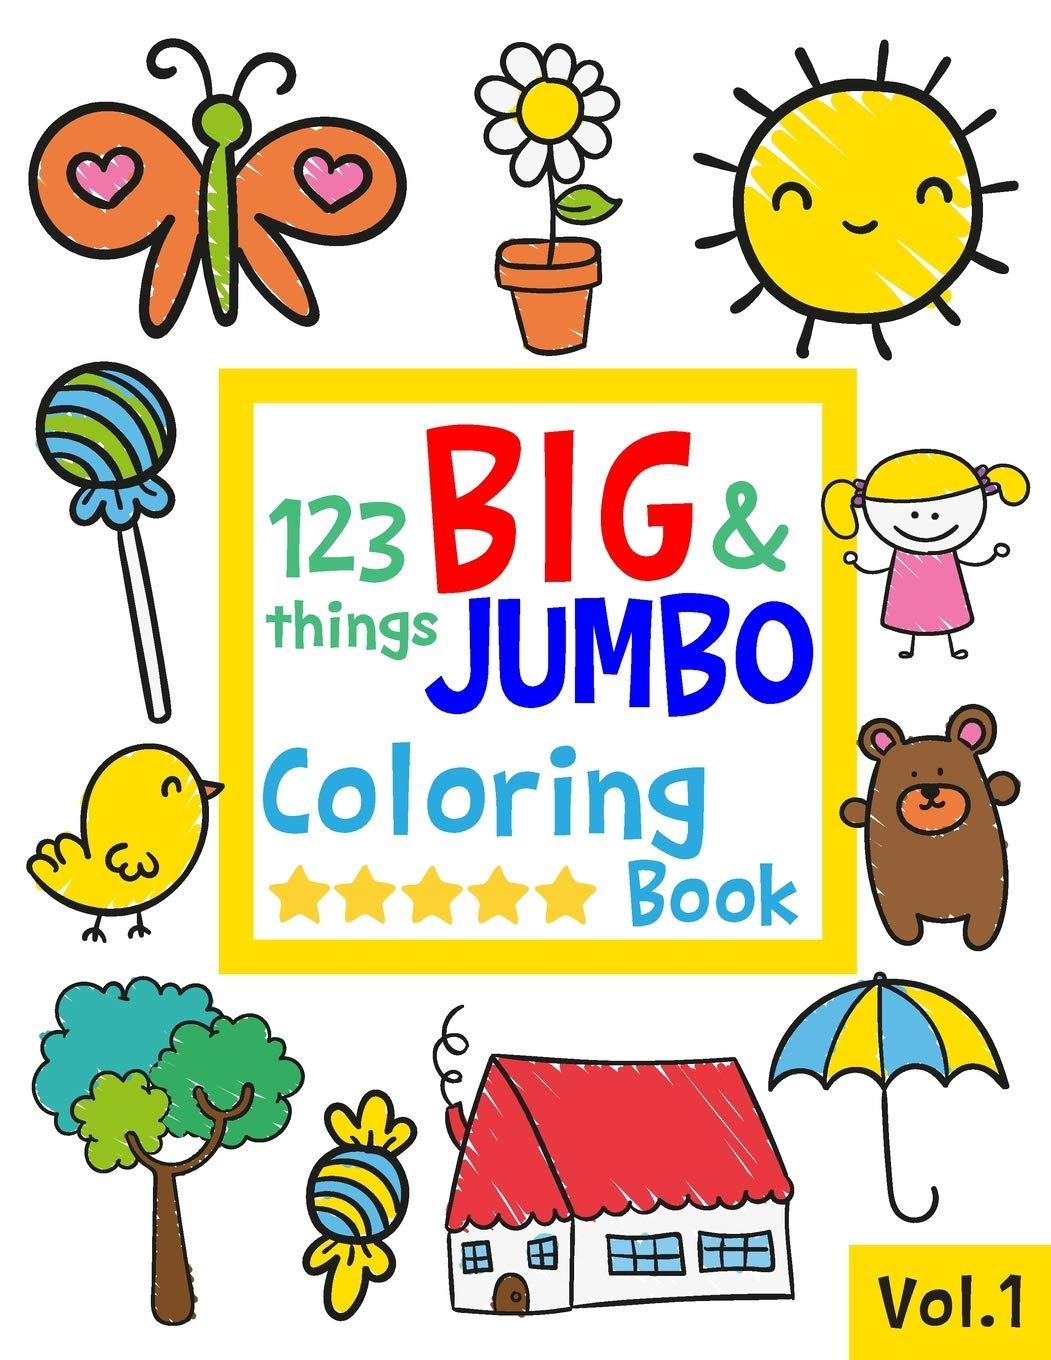 18 things BIG & JUMBO Coloring Book 18 Coloring Pages, Easy ...